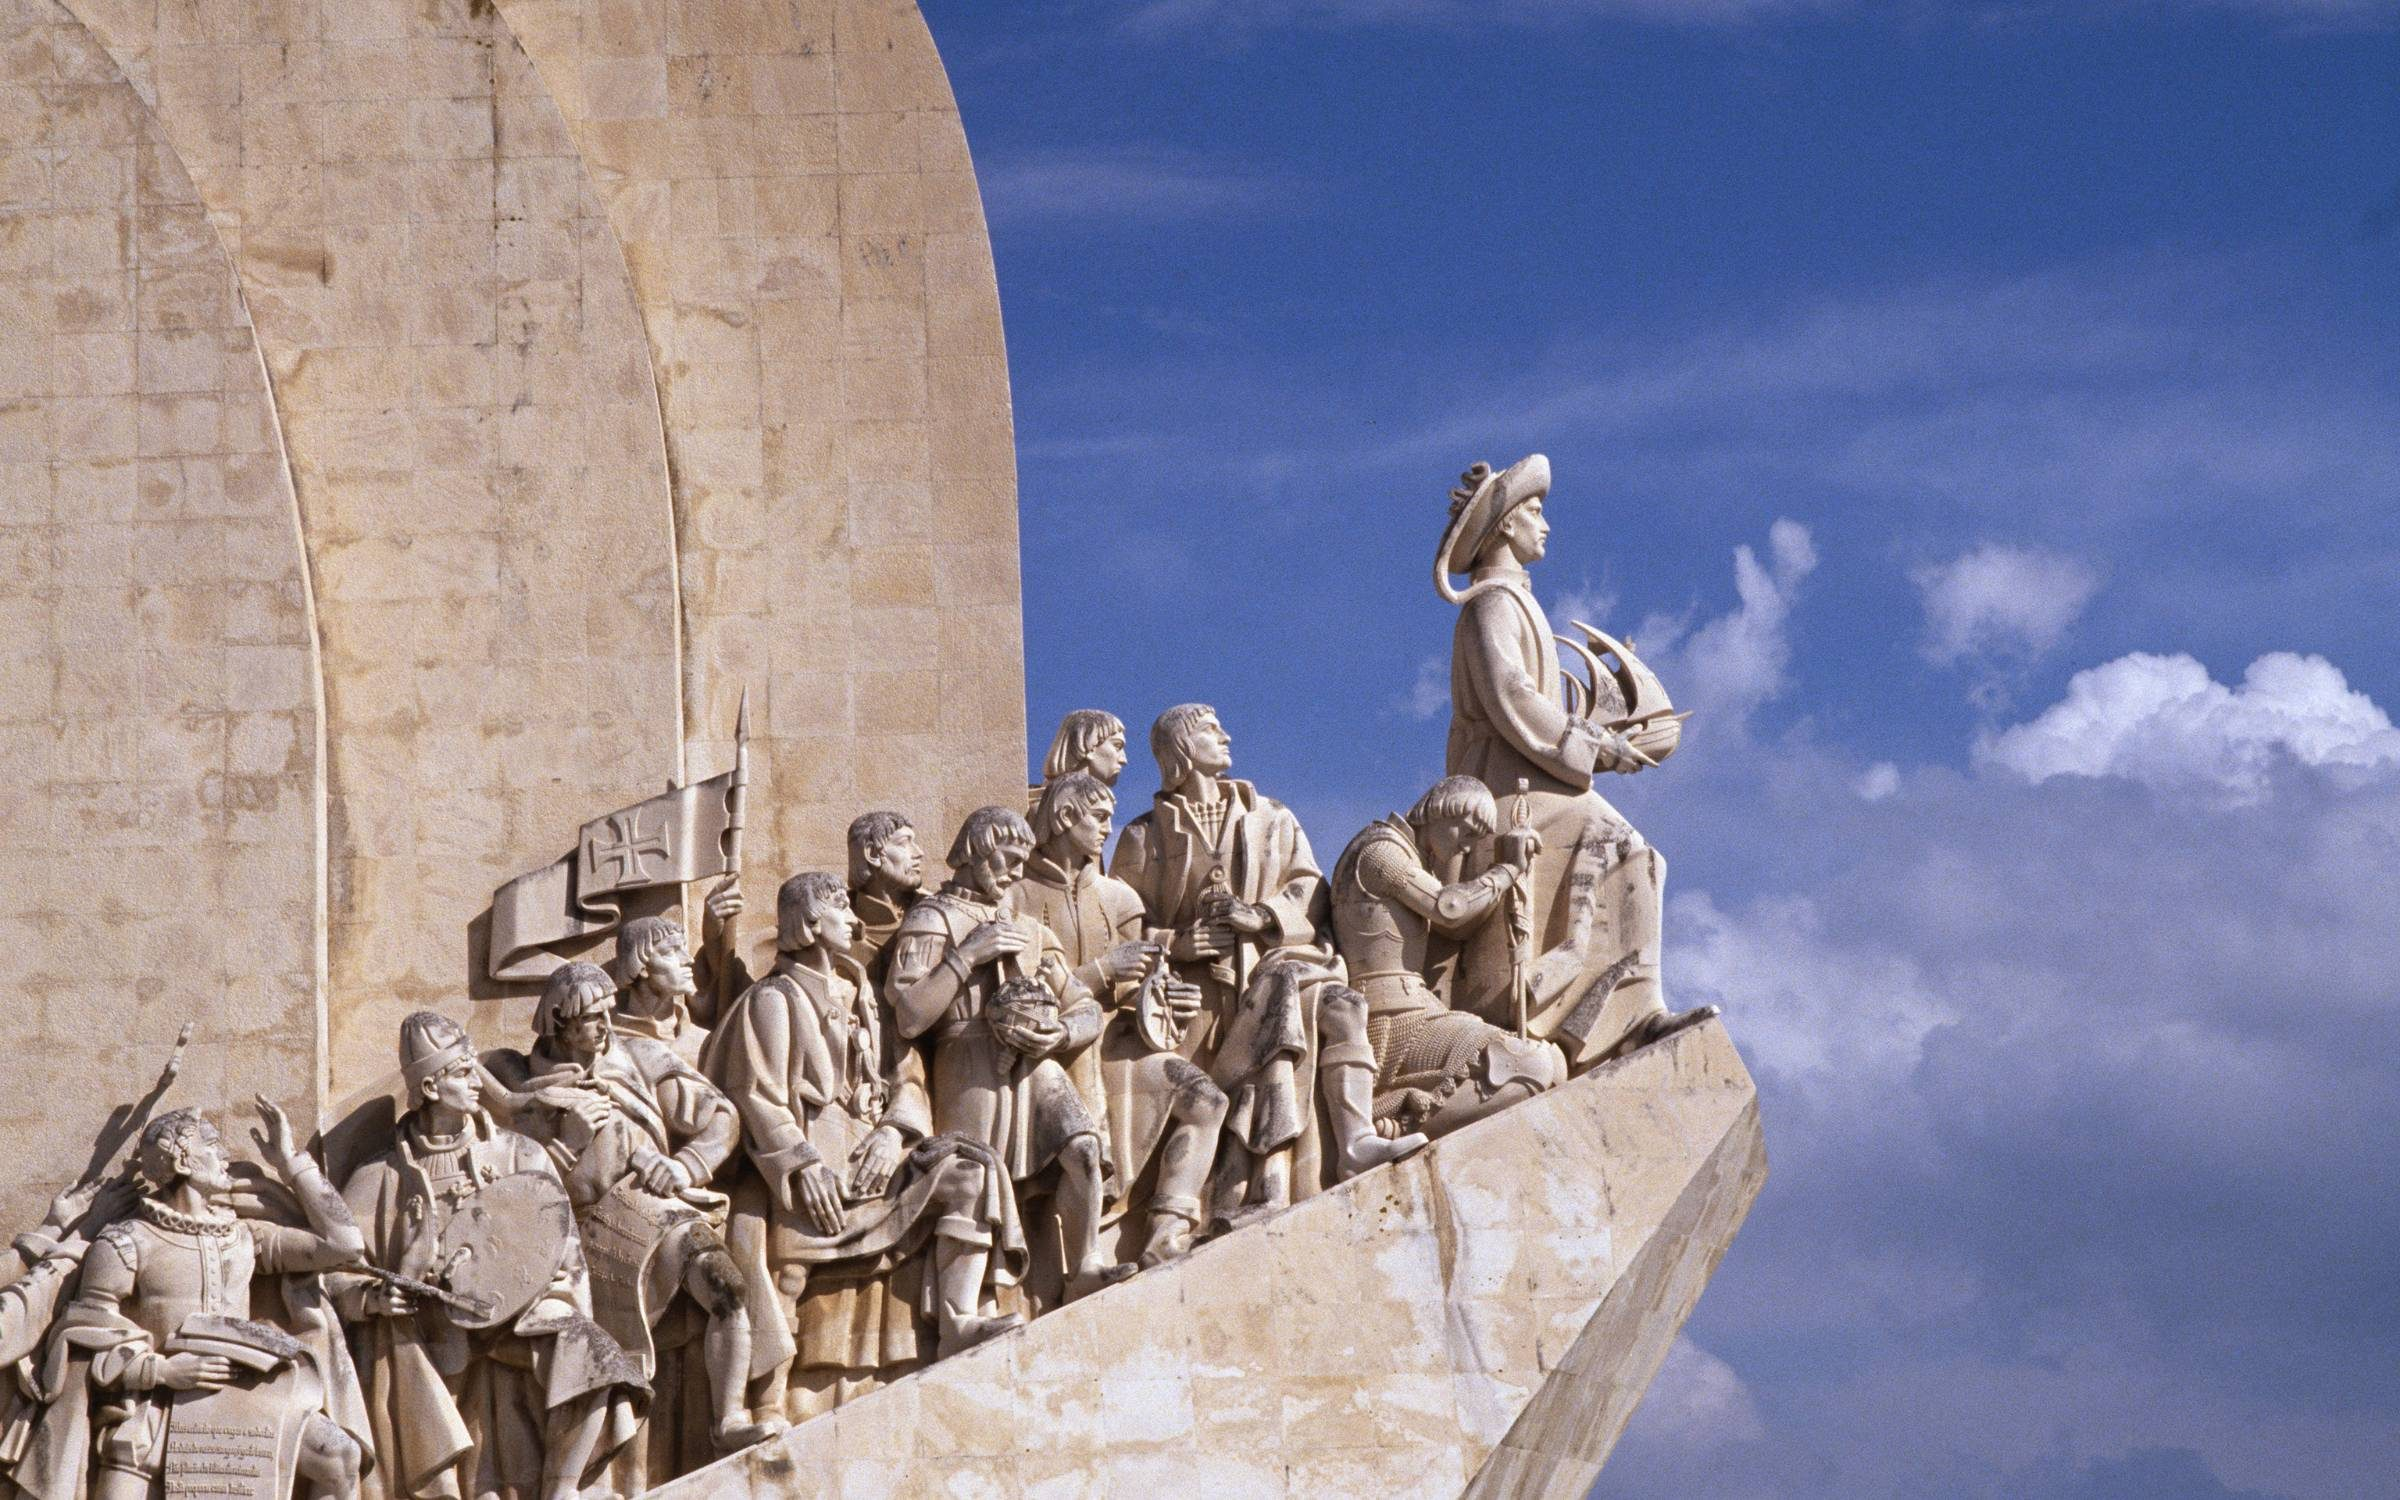 Lisbon: The Age of Discoveries Monument celebrates the Golden Age of Portuguese maritime history. Credit: Jacques Pavlovsky/Sygma via Getty Images.